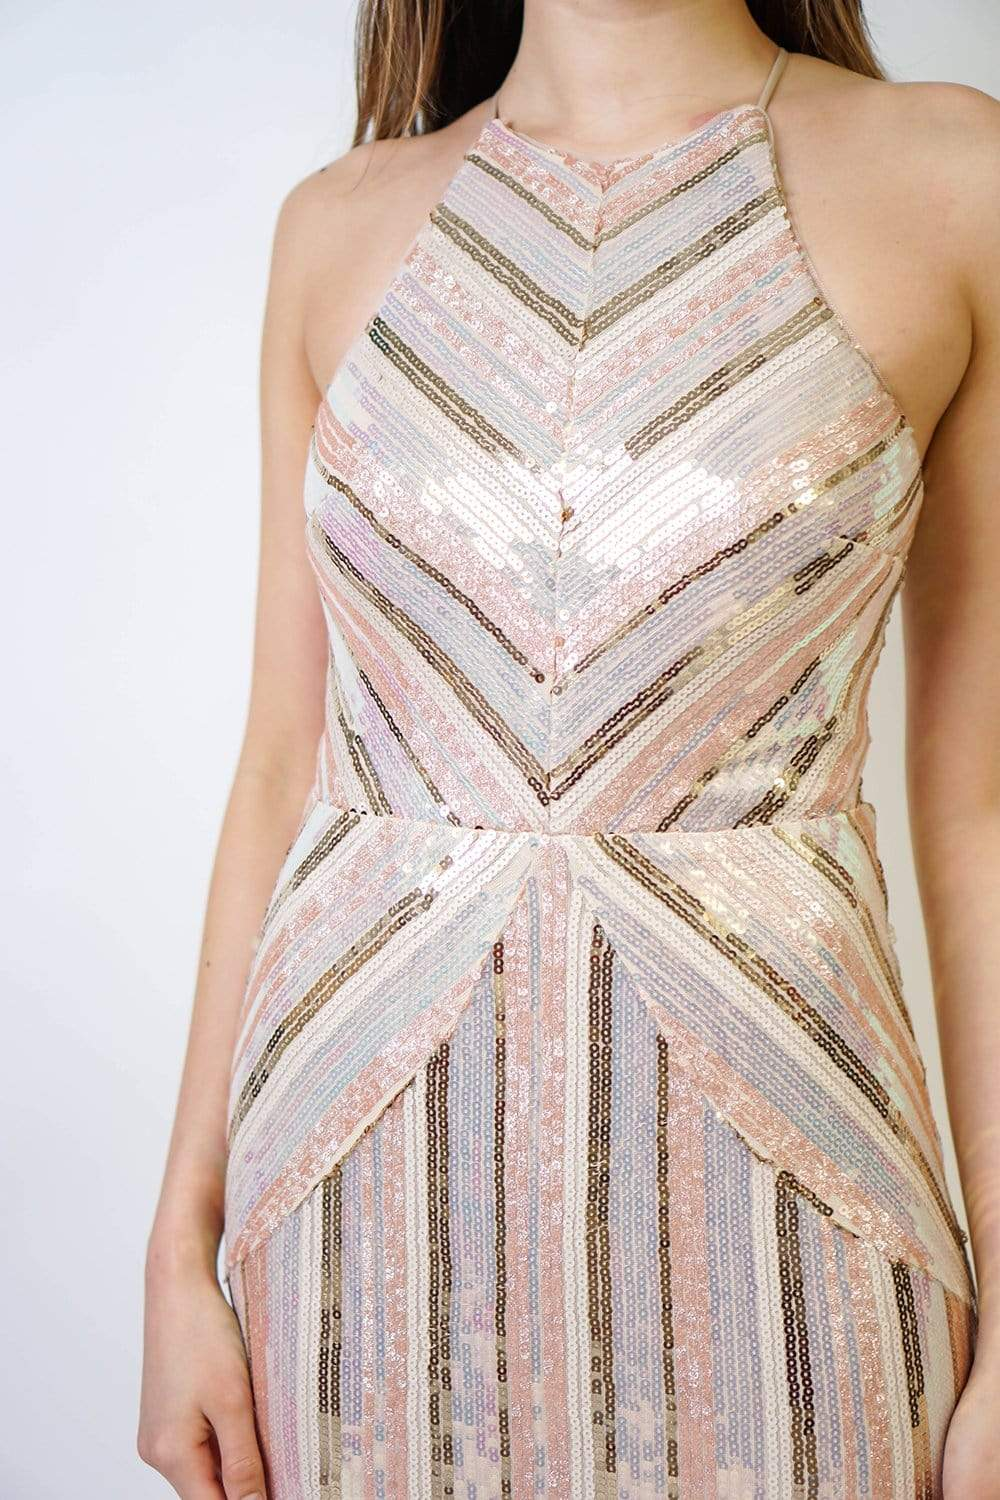 GOWN Sequin Panelled Column Gown - Chloe Dao